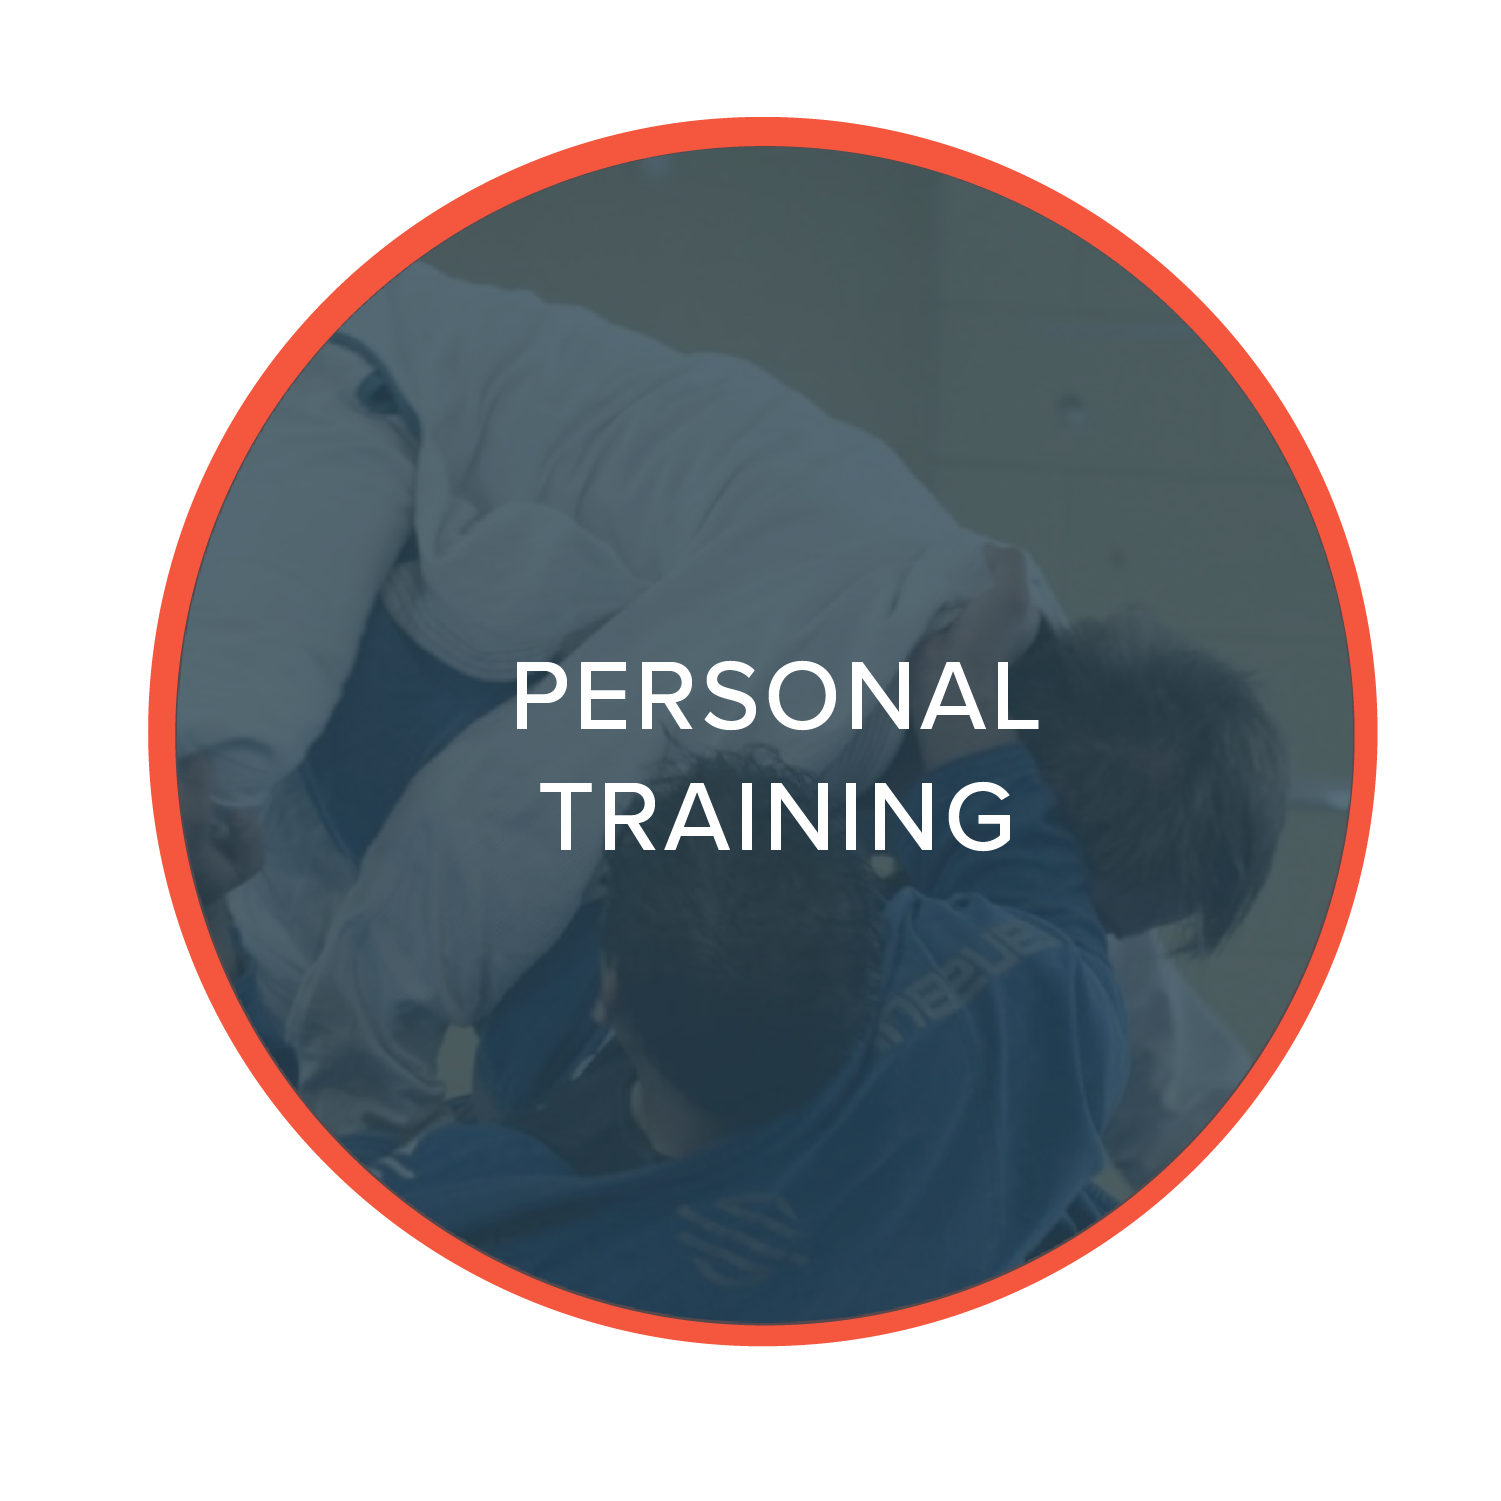 We're here to make sure that you reach your personal goals in your fitness or martial arts journey. Our personalized training matches you with an experienced, dedicated instructor who will give you the advanced tools and knowledge needed to reach your goals. Safety and progress are our top priorities as we help you push beyond your previous limitations with every session.  Get Started.